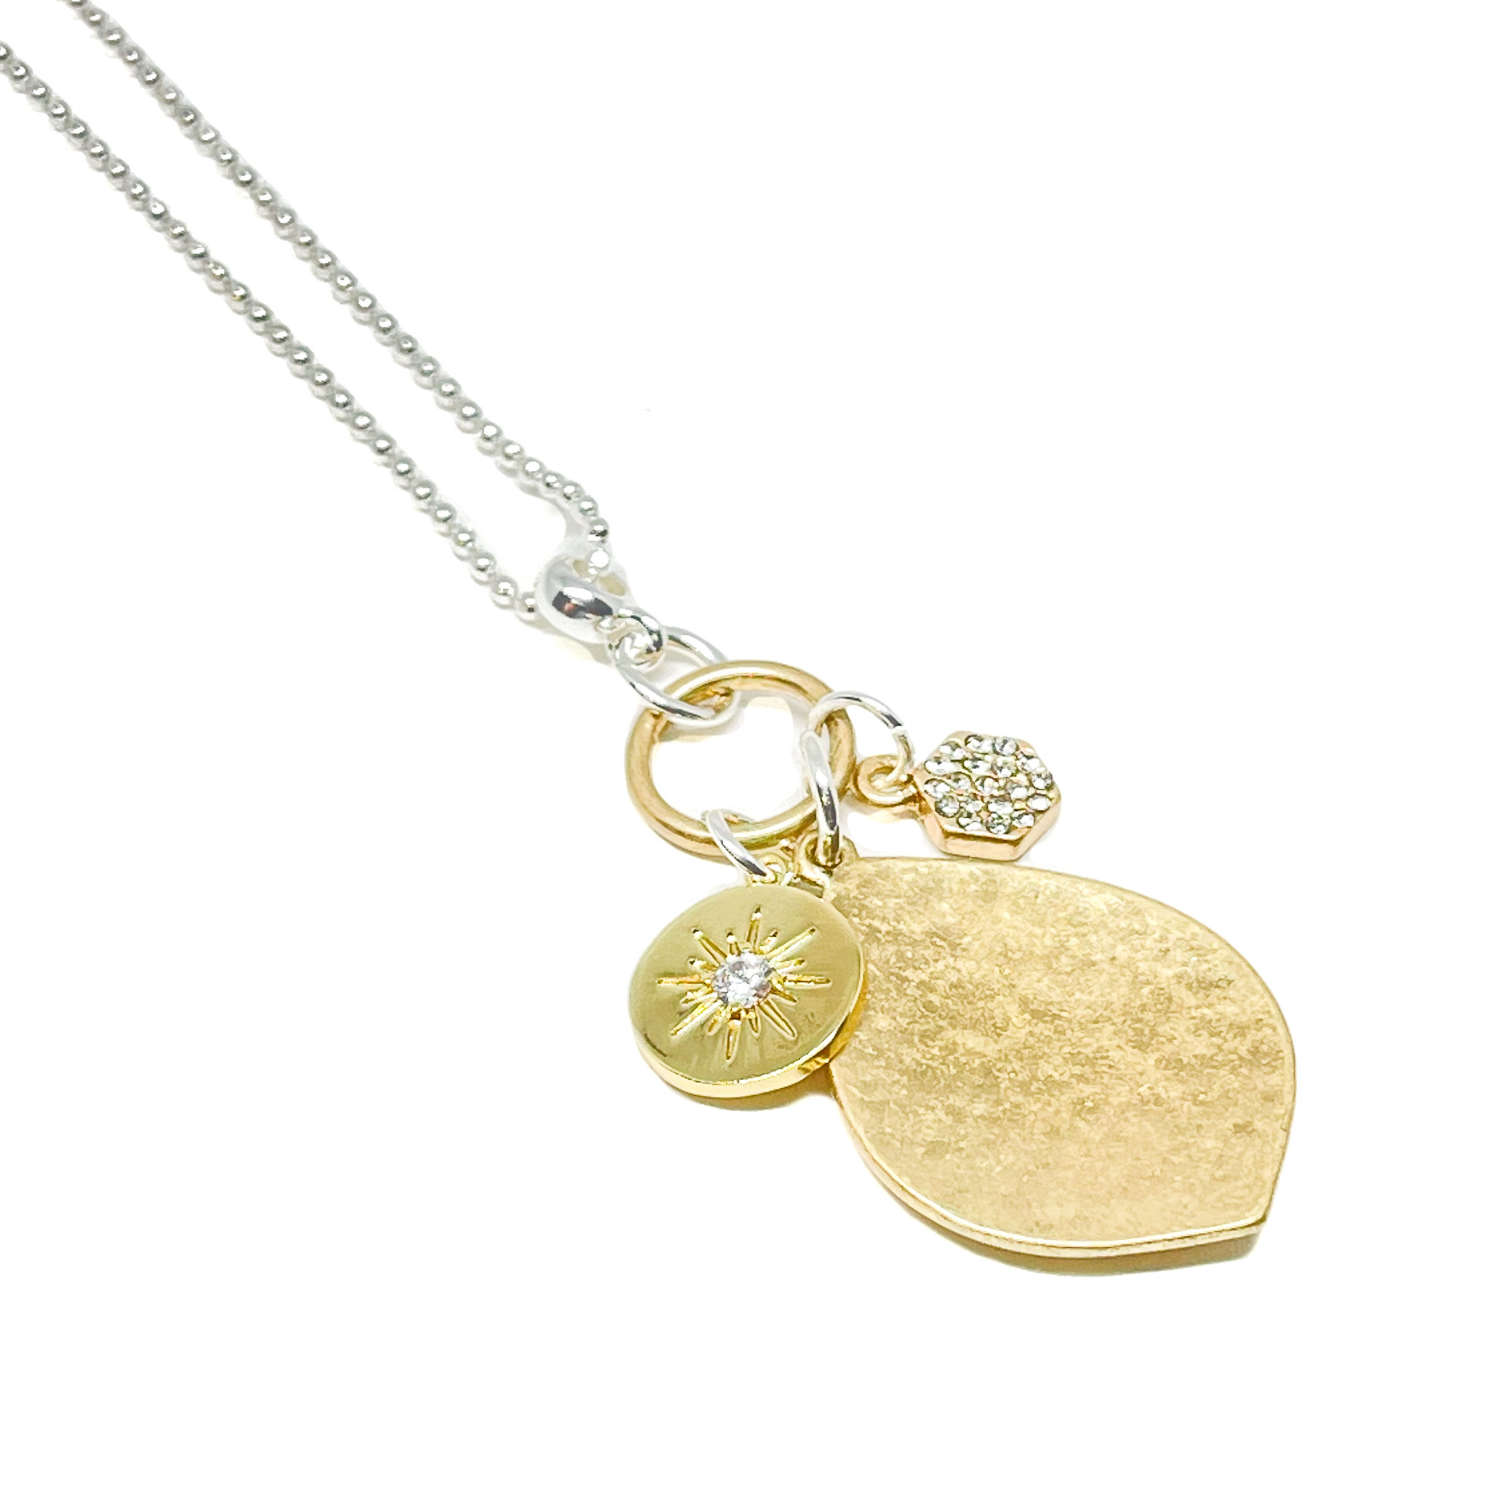 Petra Charm Necklace - Gold